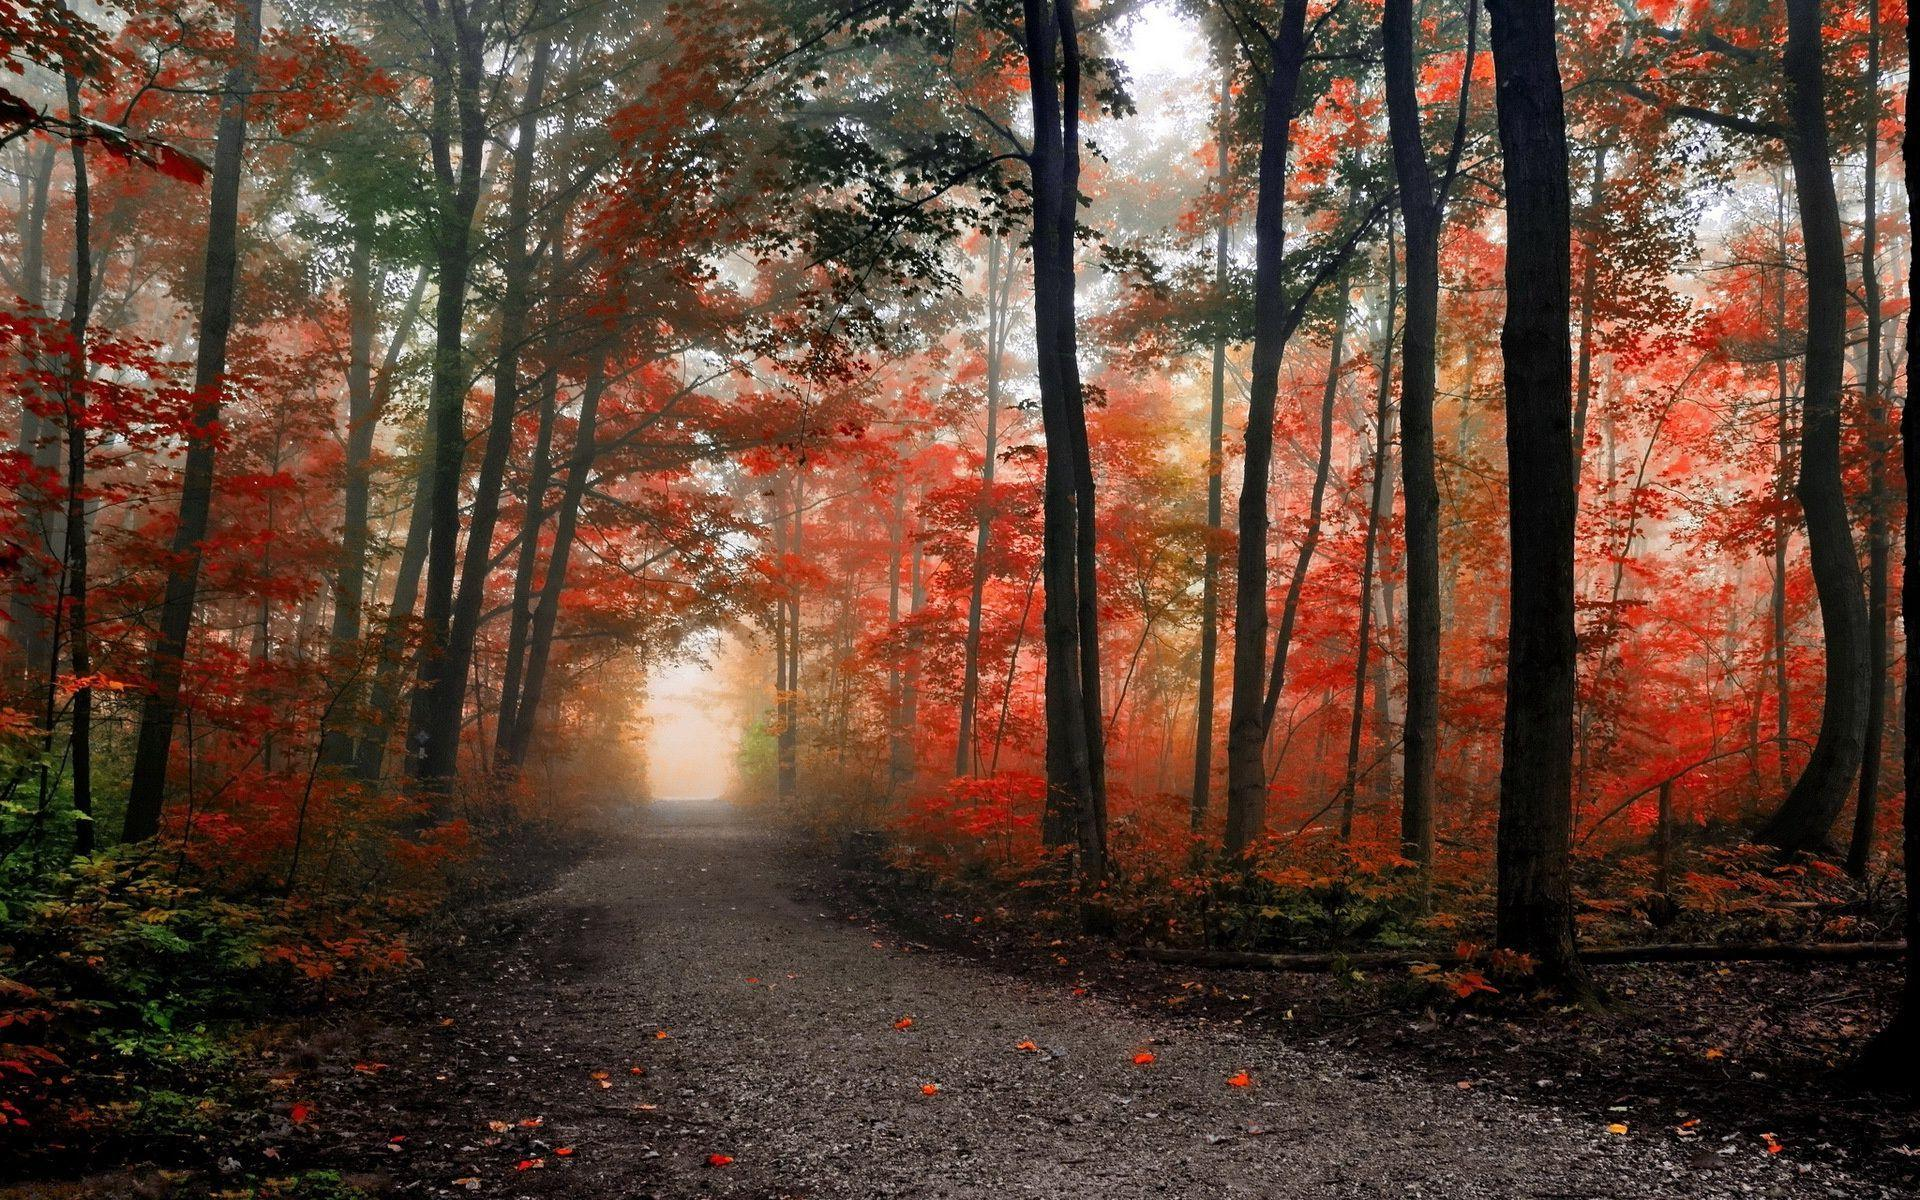 Free Full Screen Fall Wallpaper Hd Path In The Foggy Autumn Forest Wallpaper Download